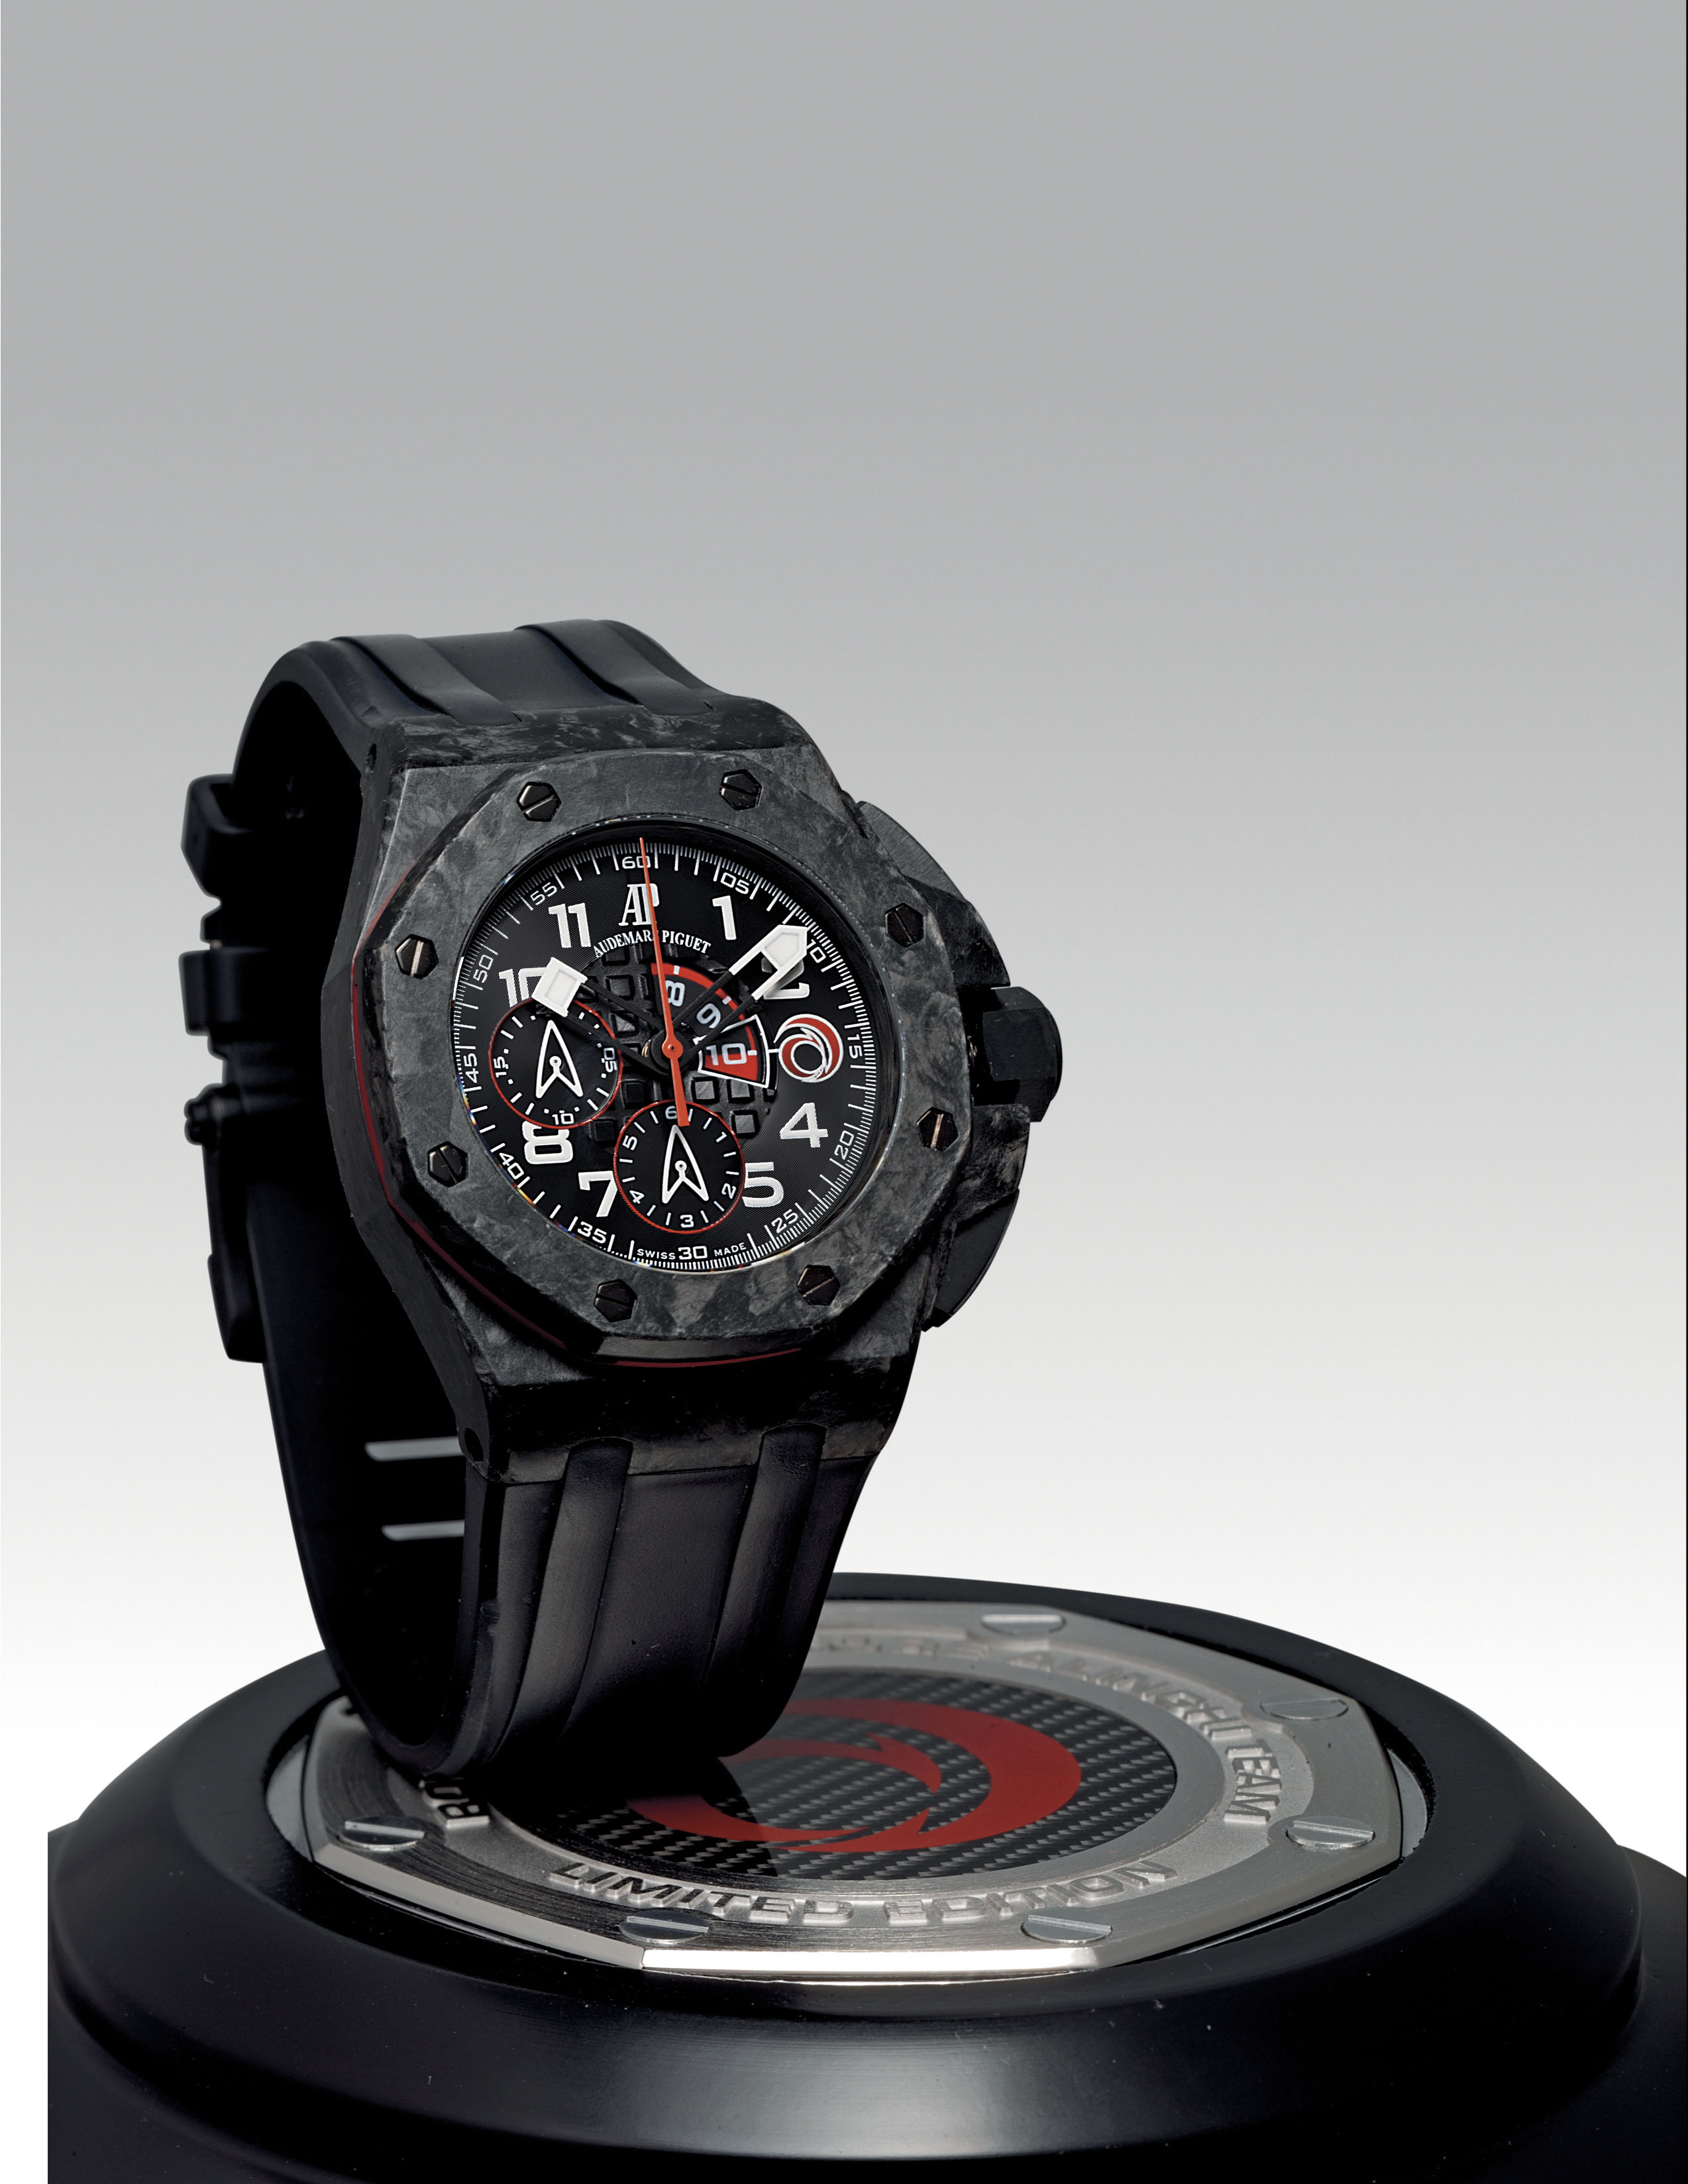 AUDEMARS PIGUET. AN OVERSIZED CARBON LIMITED EDITION AUTOMATIC FLYBACK CHRONOGRAPH WRISTWATCH WITH REGATTA COUNTDOWN